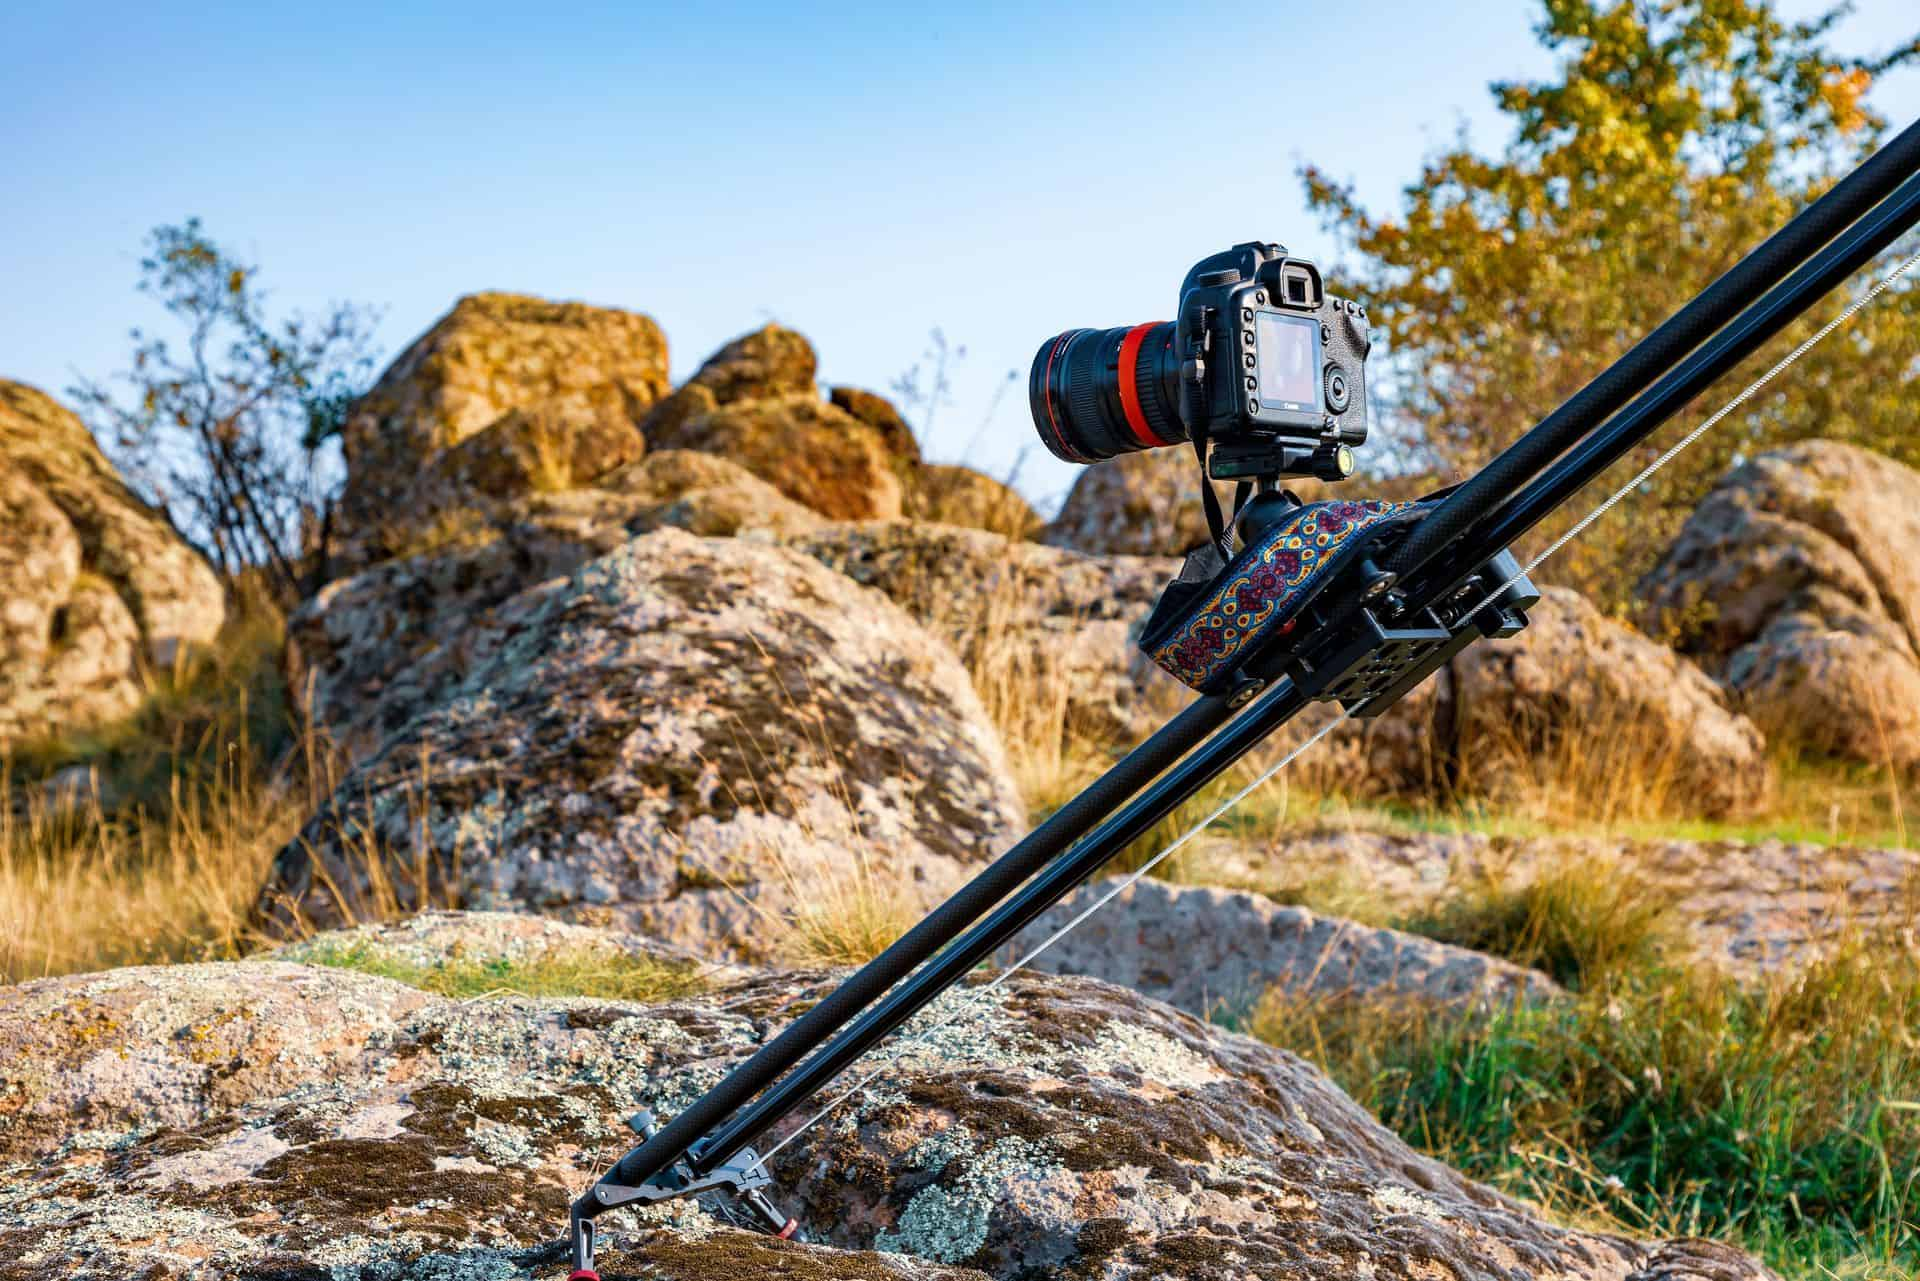 What Is the Best Length For a Camera Slider